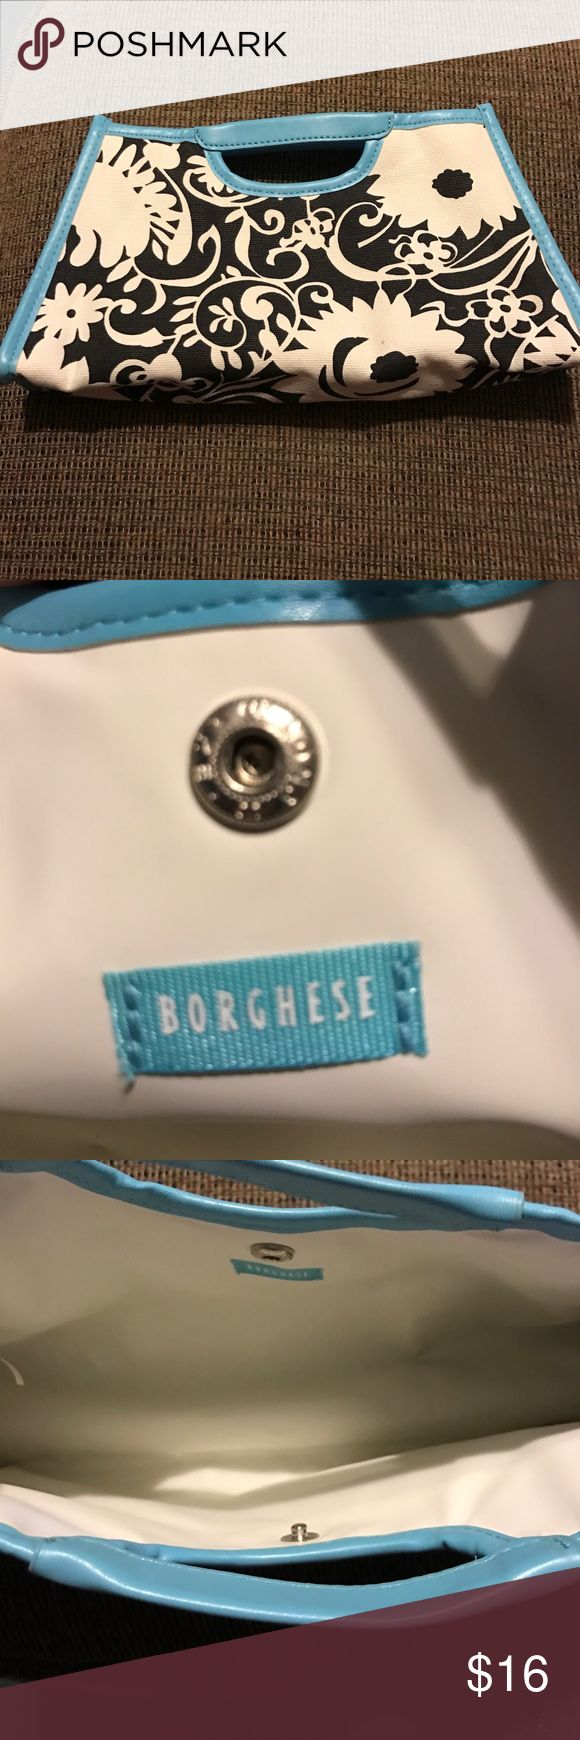 Cosmetic case Borghese make up case or small bag. Great condition. Borghese Makeup